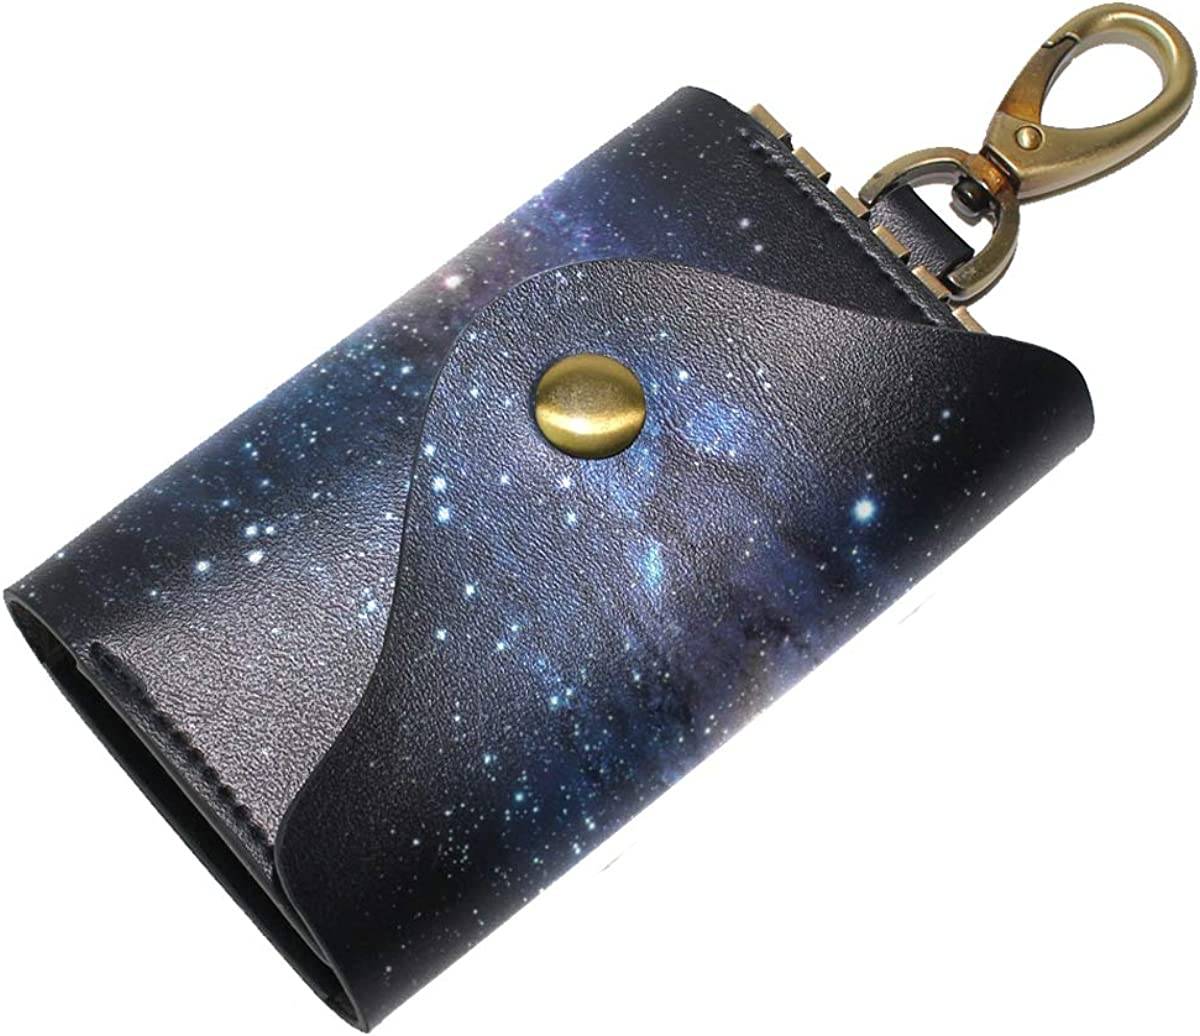 KEAKIA Galaxy Leather Key Case Wallets Tri-fold Key Holder Keychains with 6 Hooks 2 Slot Snap Closure for Men Women